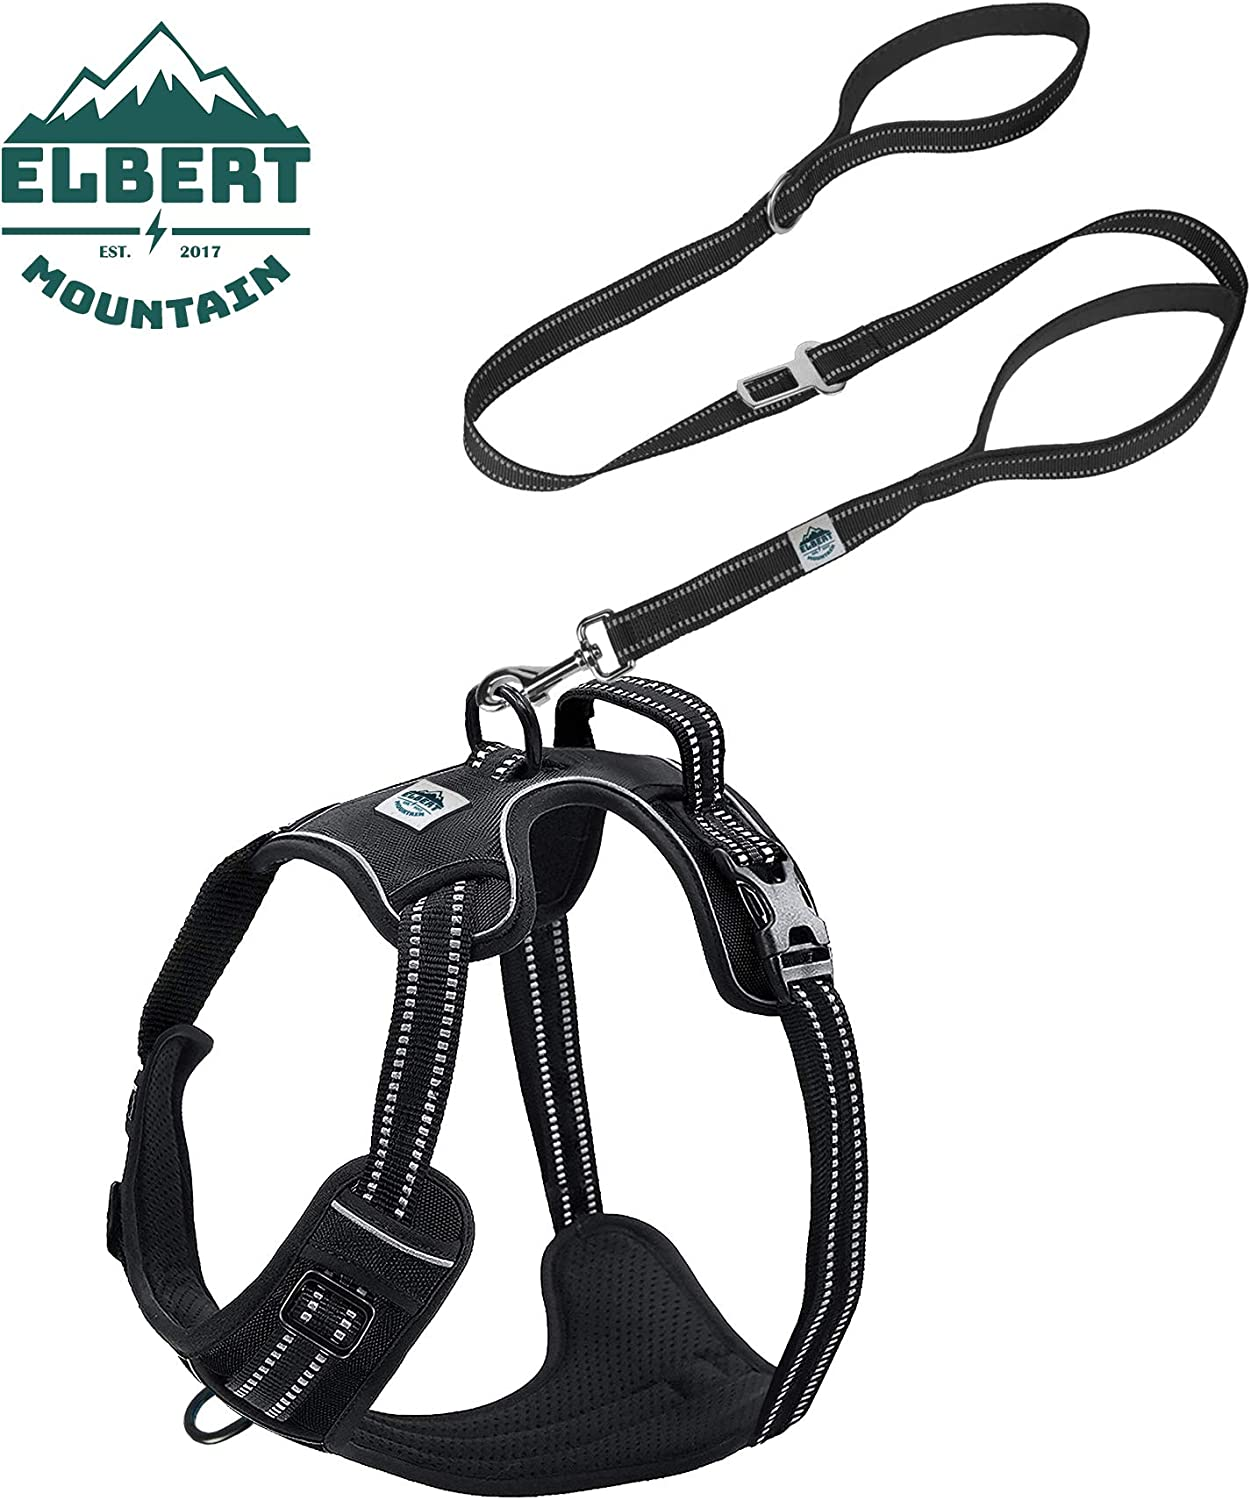 ELBERT MOUNTAIN NO PULL NO CHOKE DOG VEST HARNESS